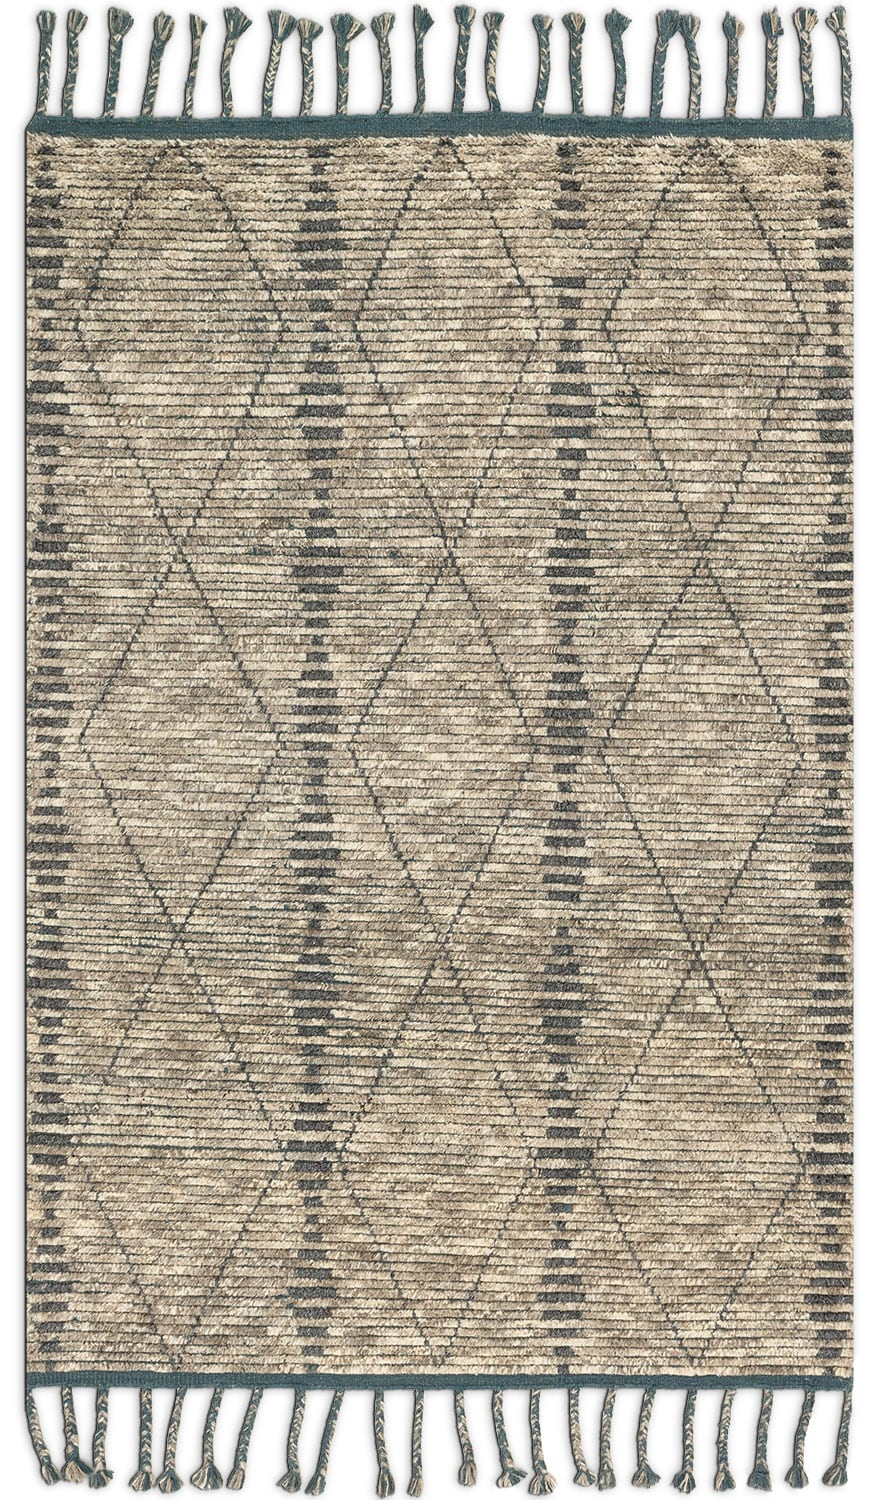 Rugs - Tulum 10' x 14' Rug - Stone and Blue